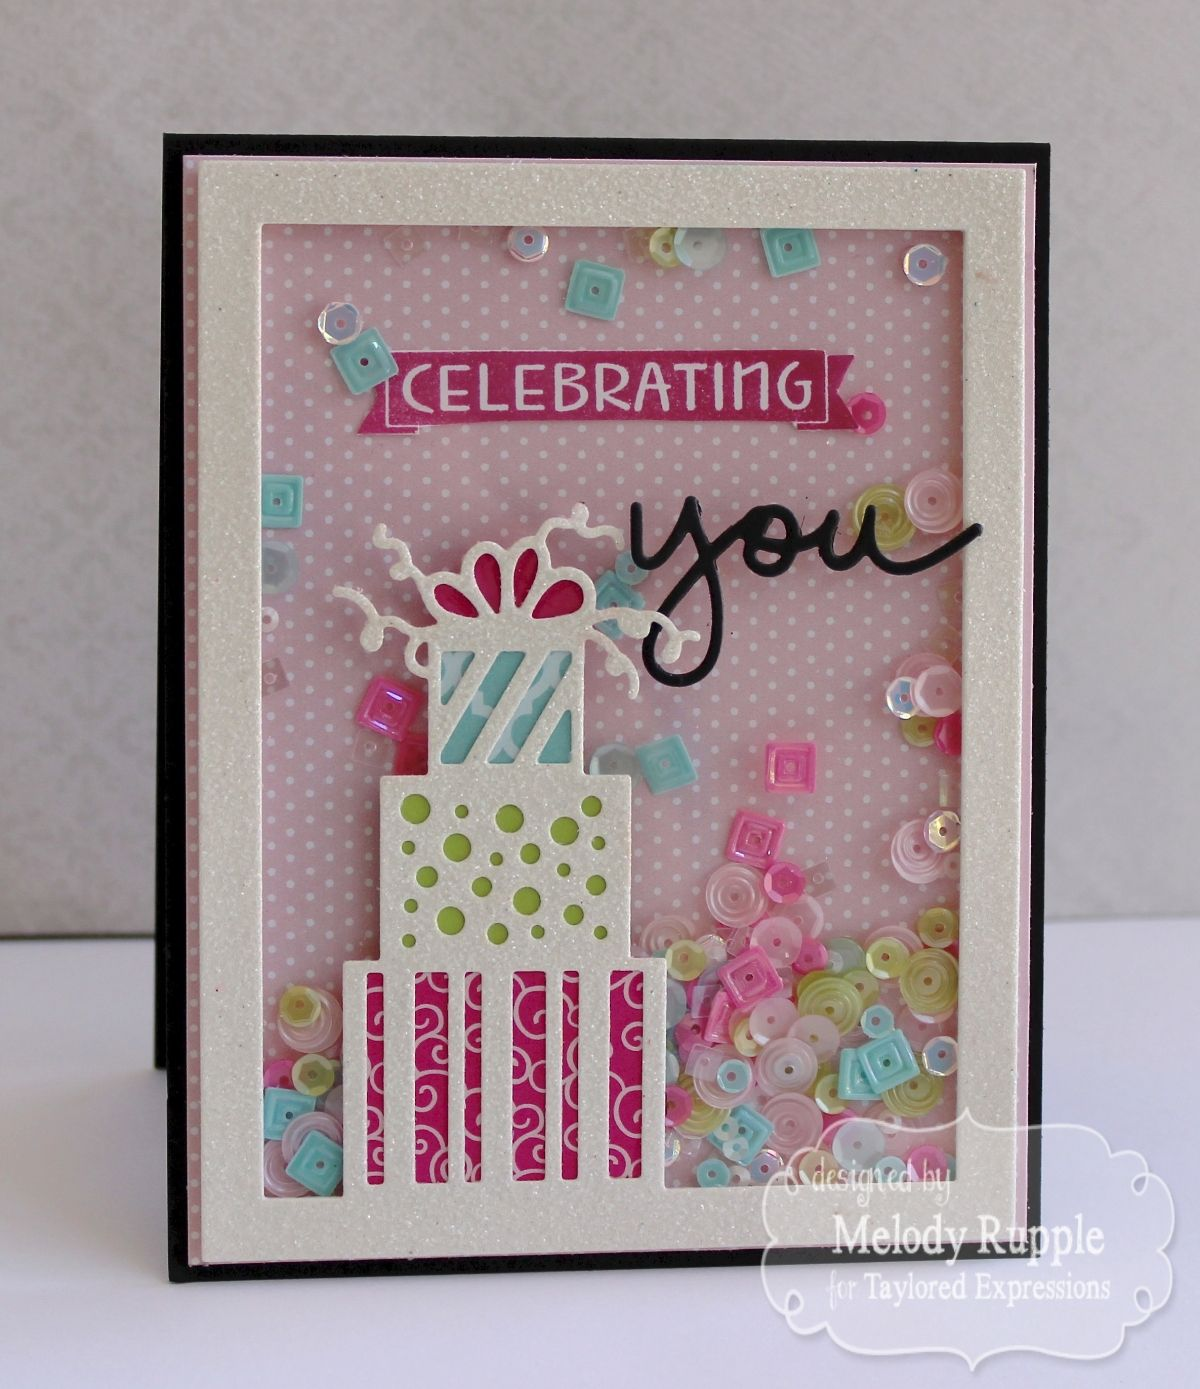 Card by Melody Rupple  (091115)  [Taylored Expressions  (dies) Presents Cutting Plate, You; (stamps) One & Only You]